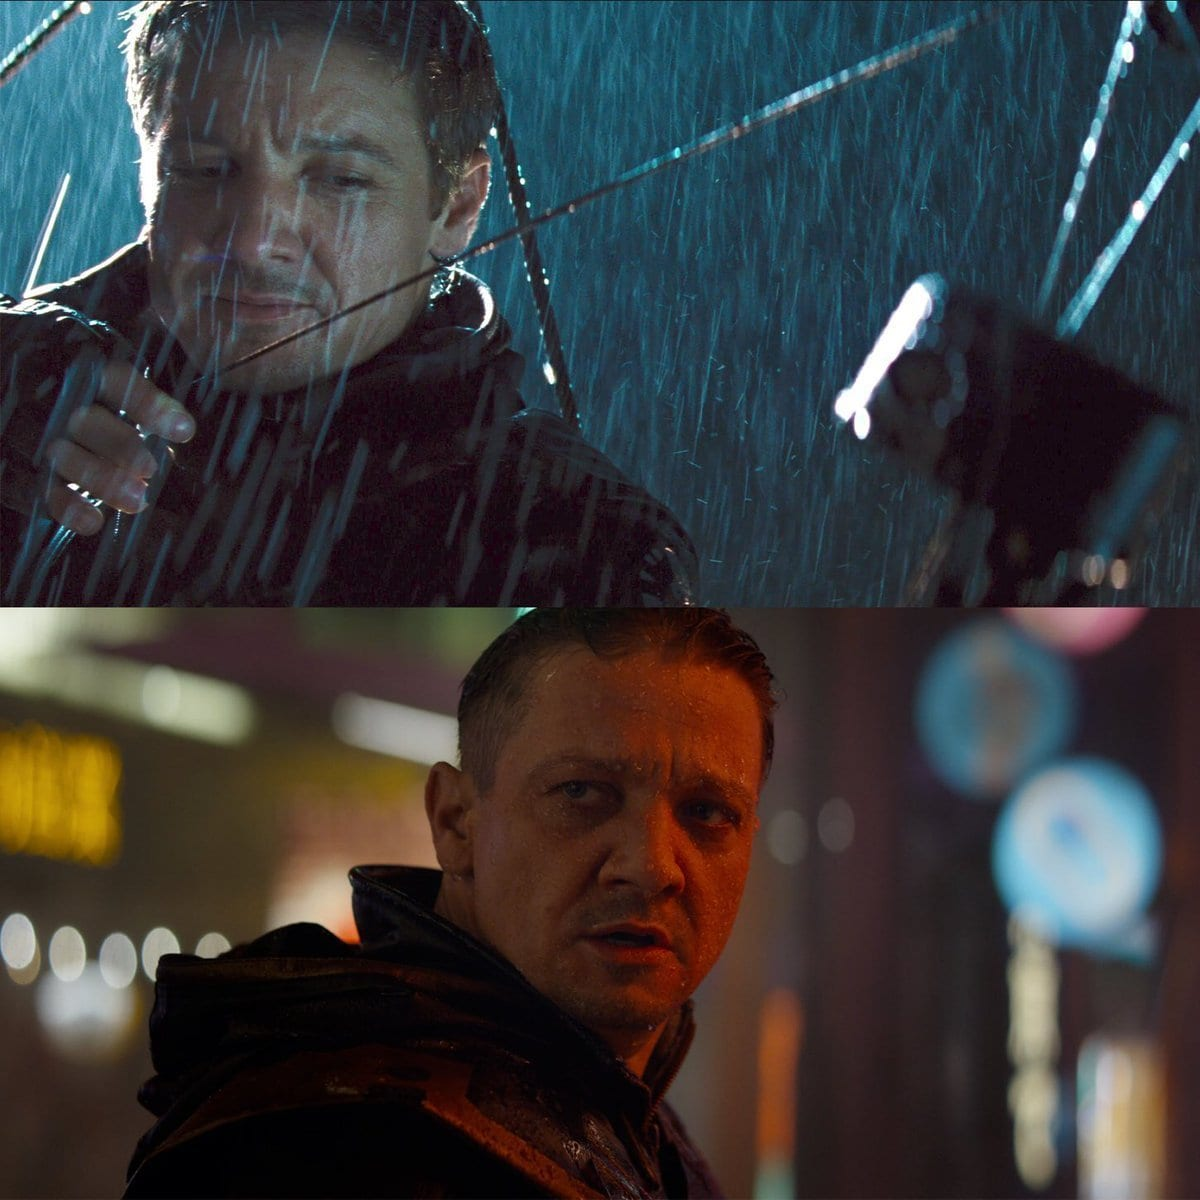 marvel-cinematic-unvierse-10-year-challenge-hawkeye-1154296